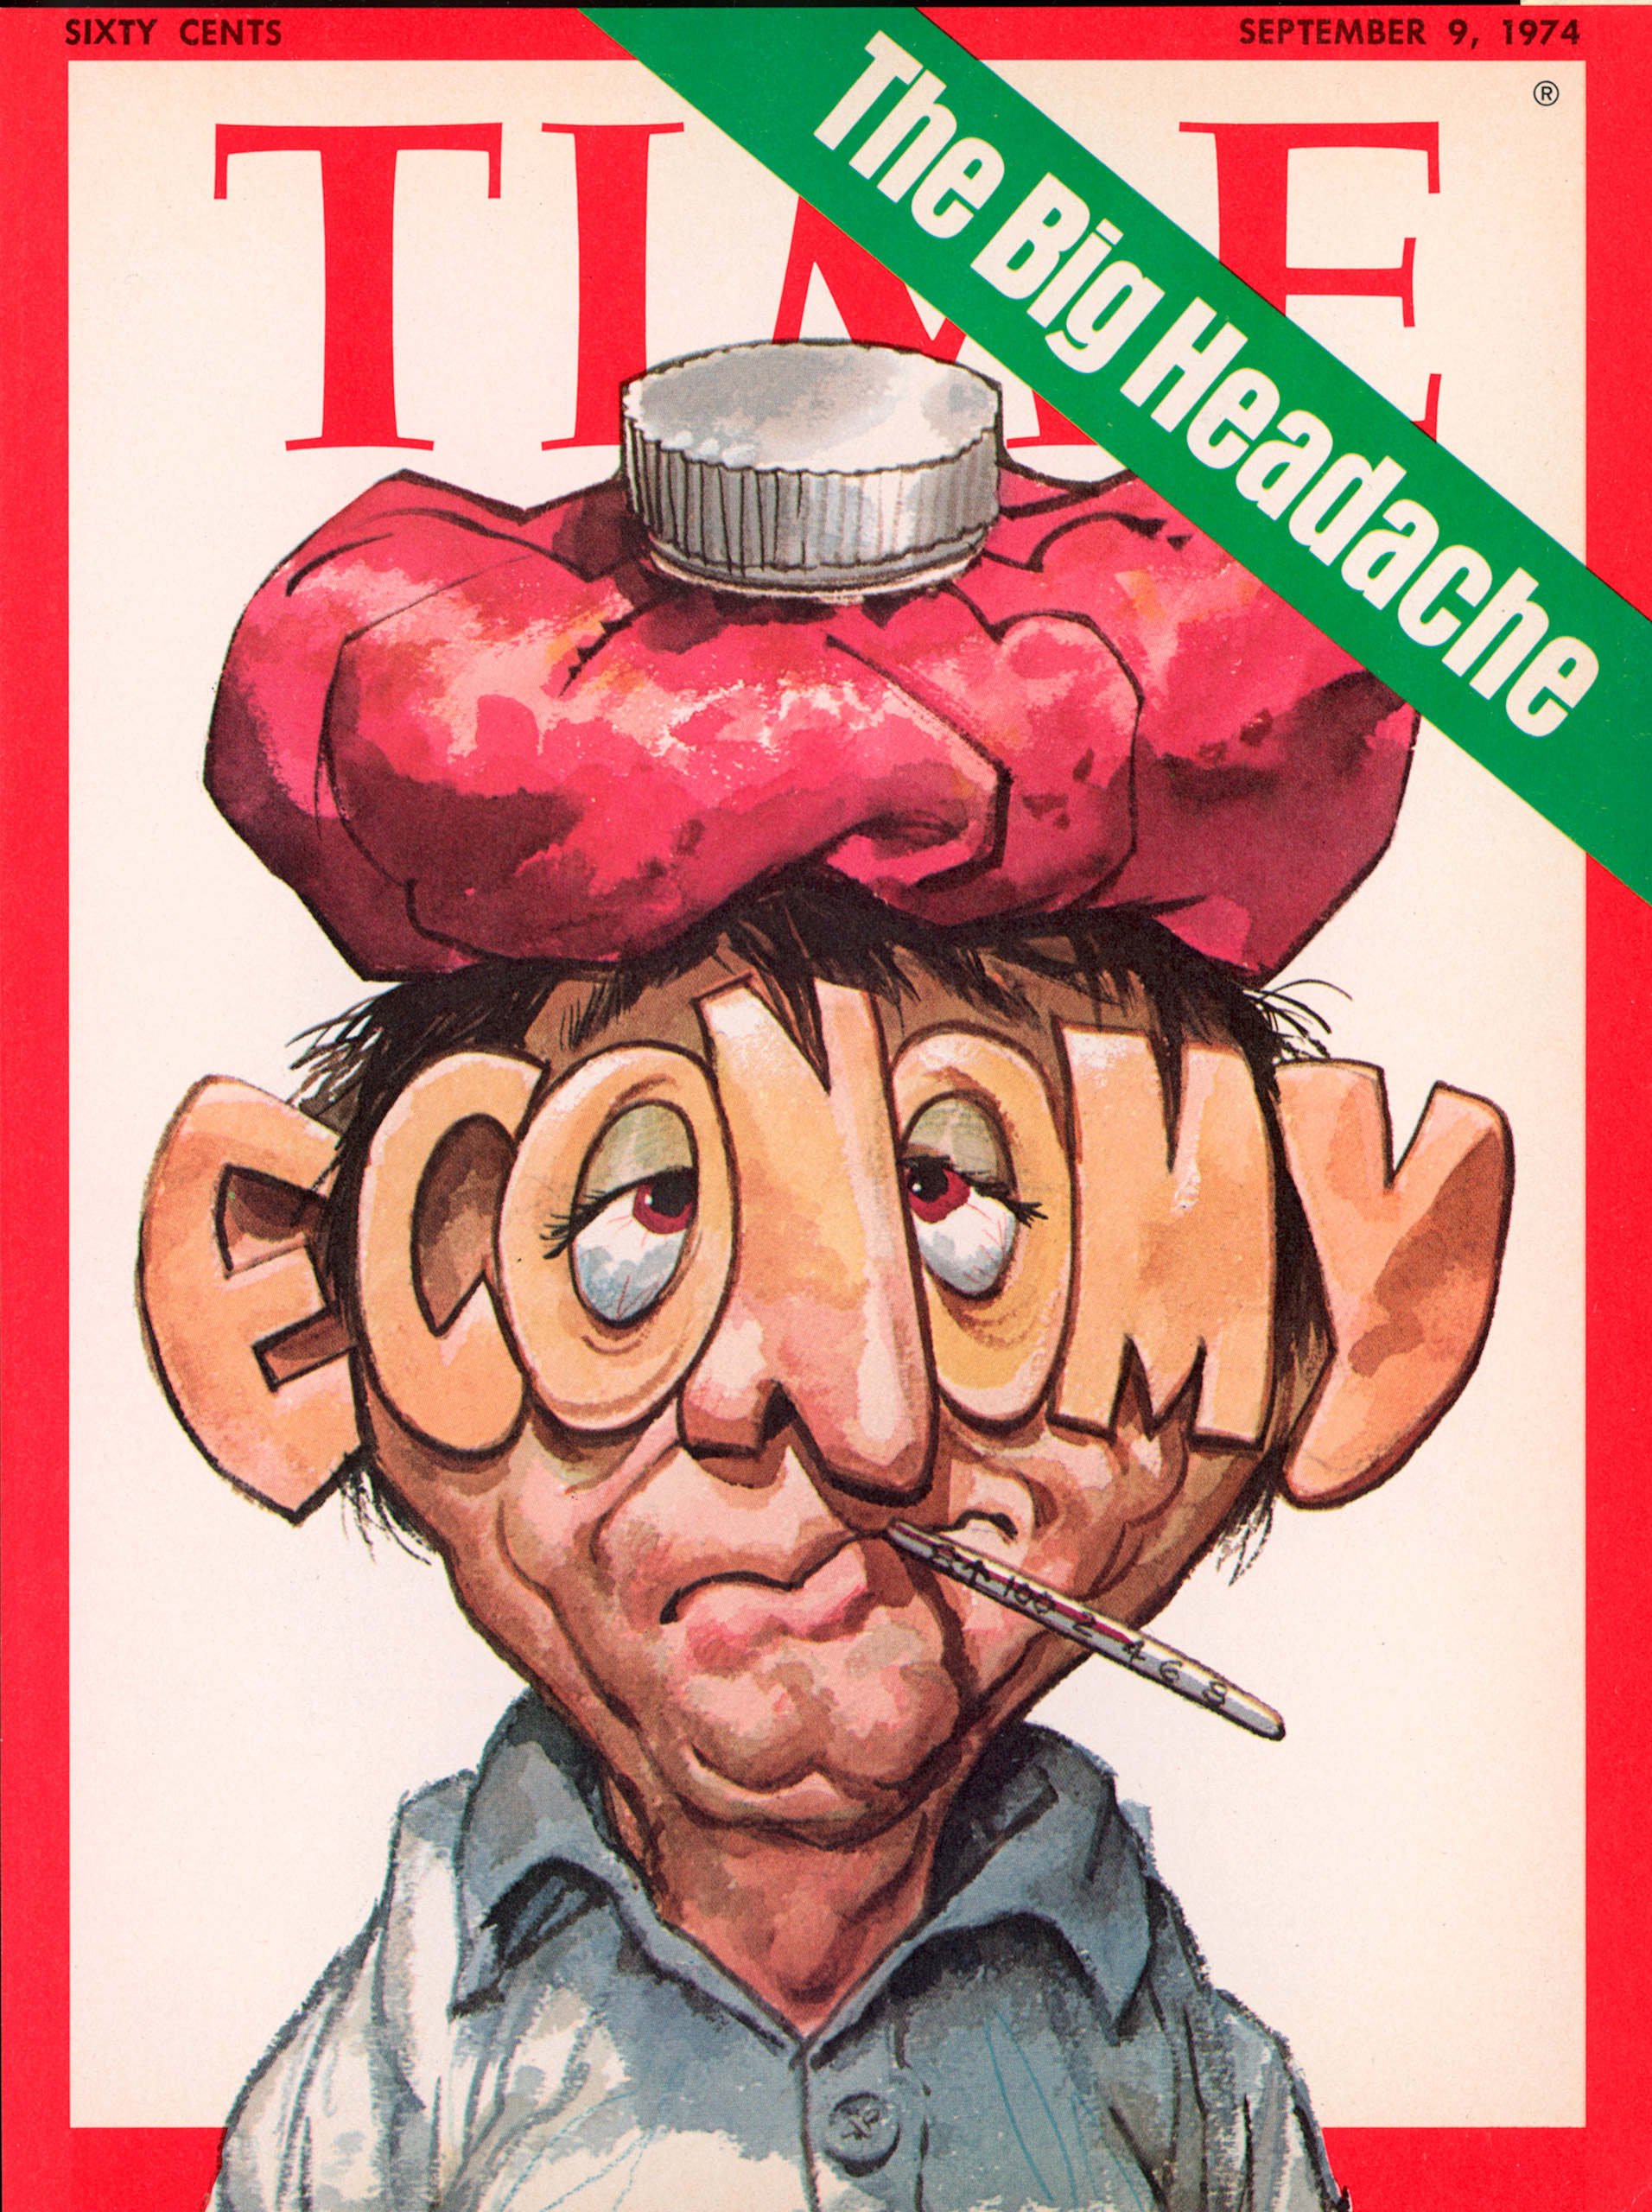 September 9, 1974 cover of TIME magazine featuring art by Jack Davis.